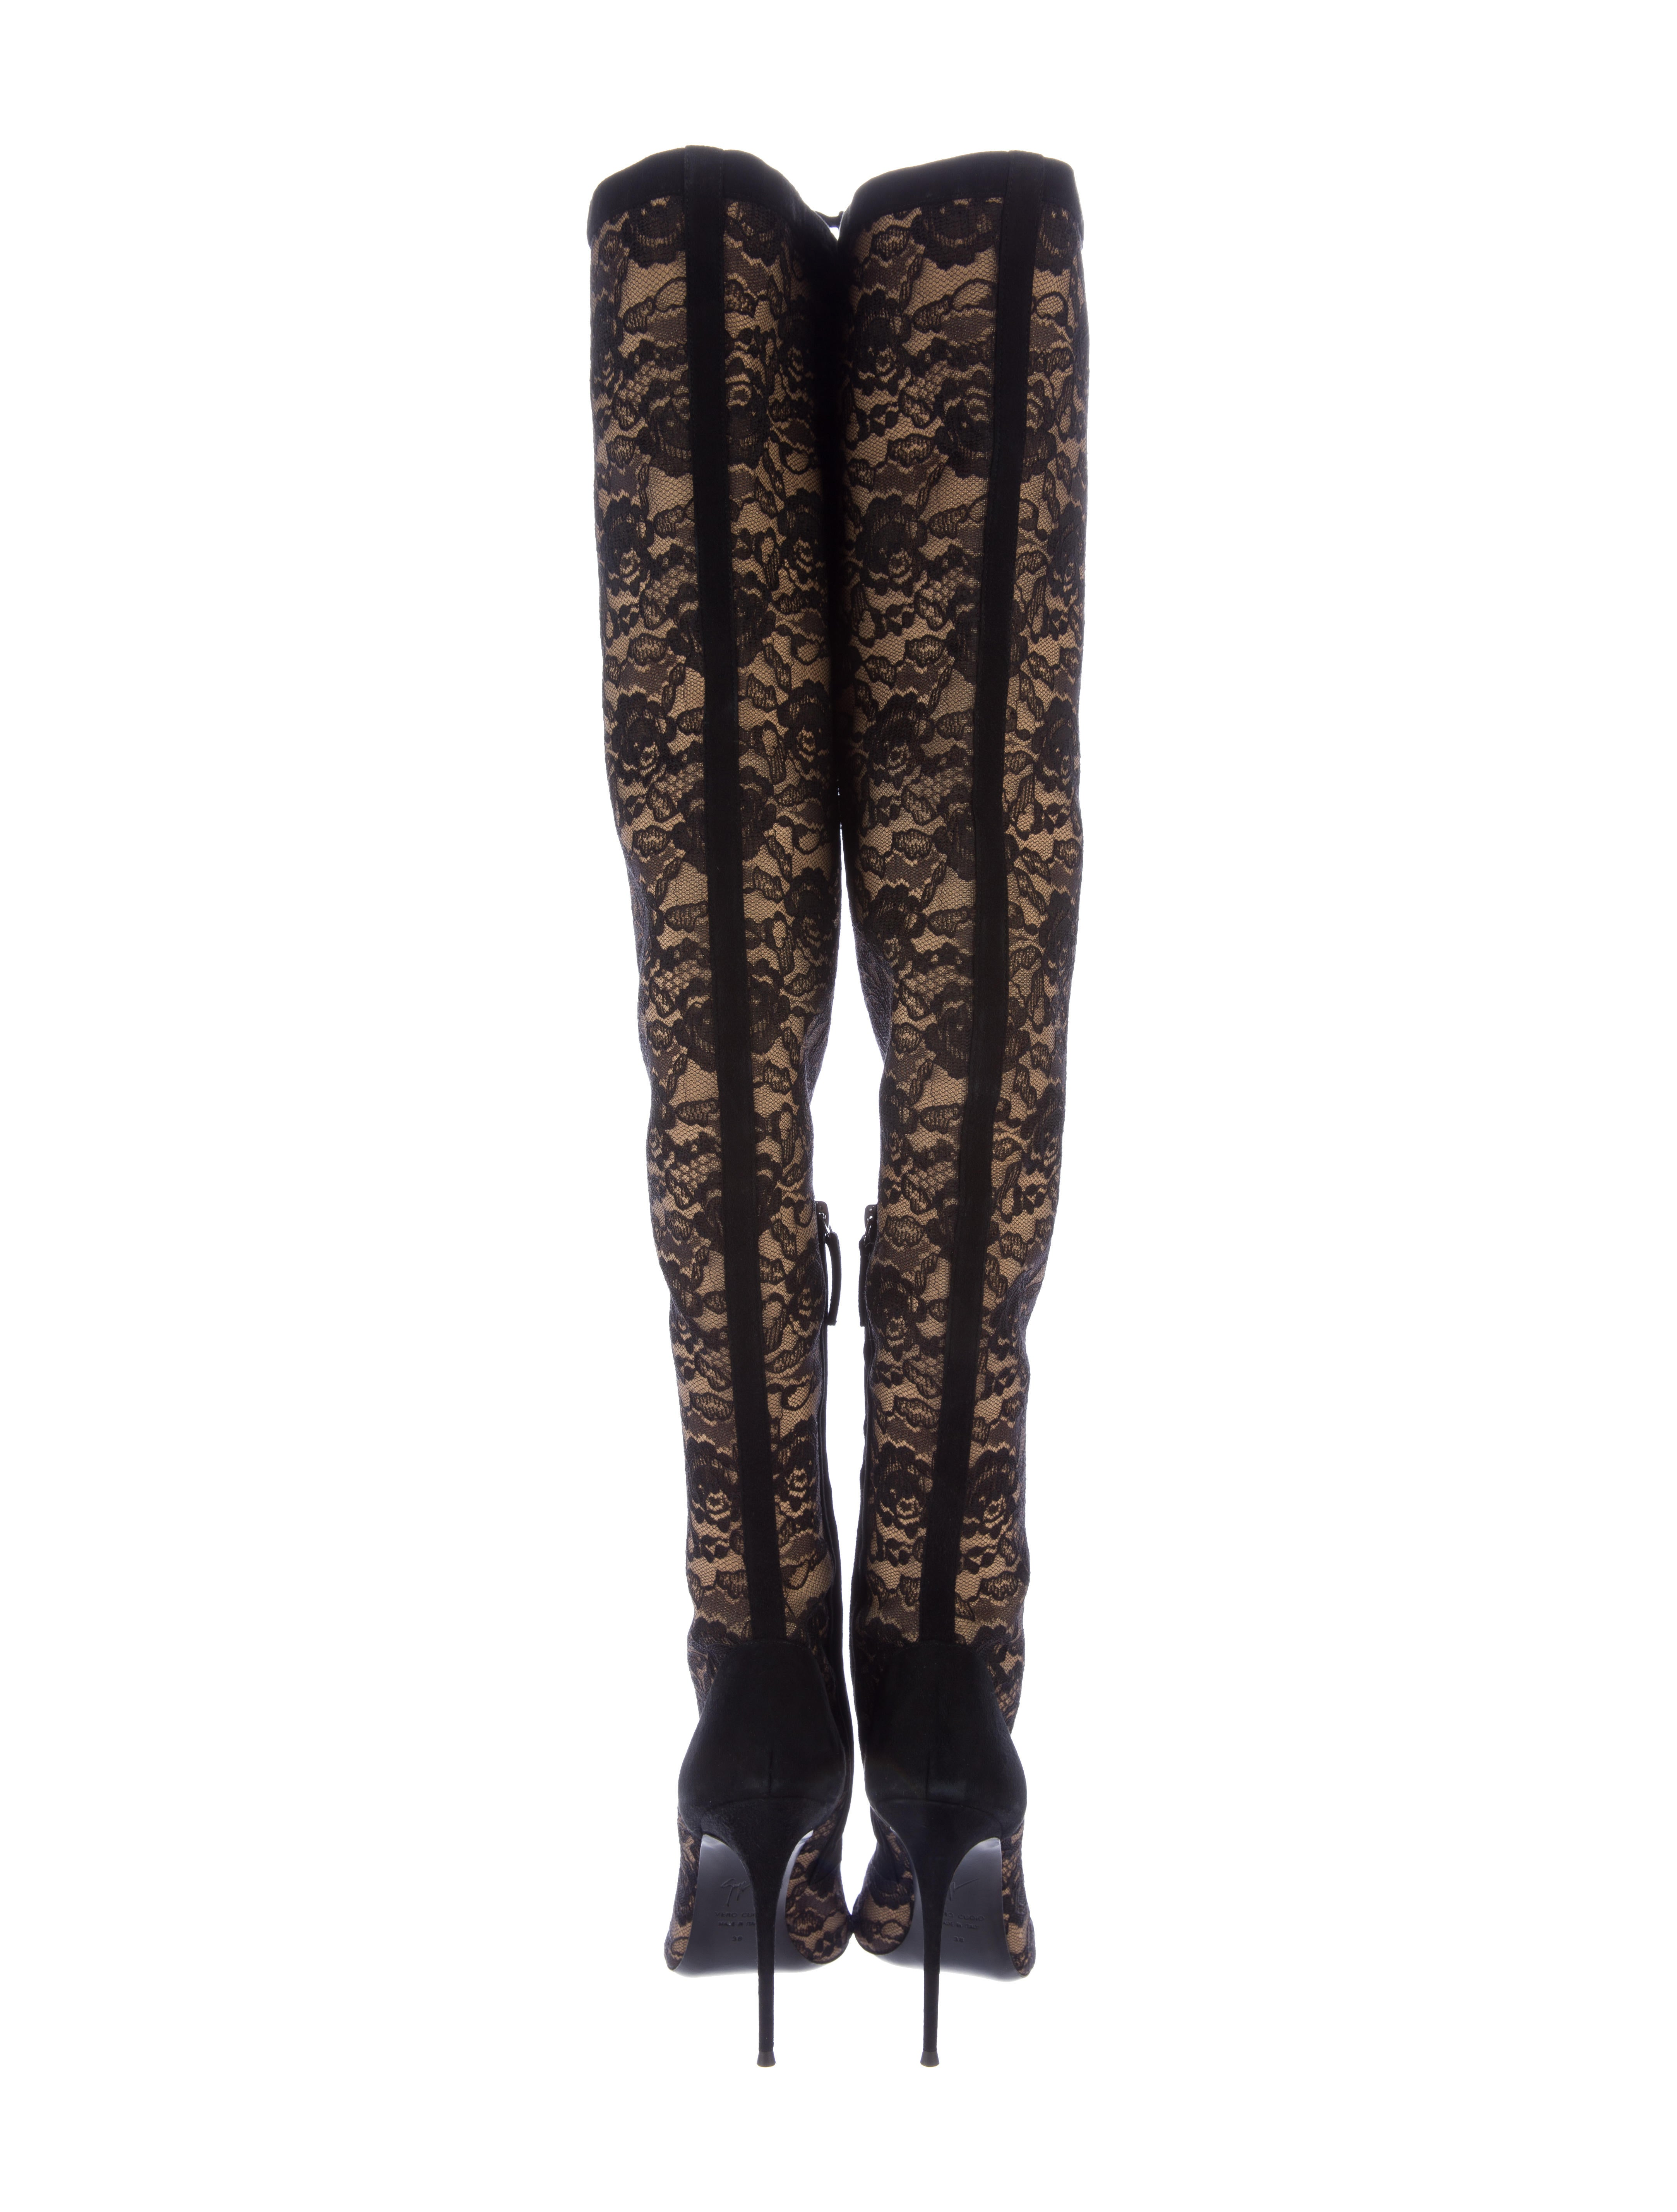 Giuseppe Zanotti Lace Thigh High Boots Shoes Giu34904